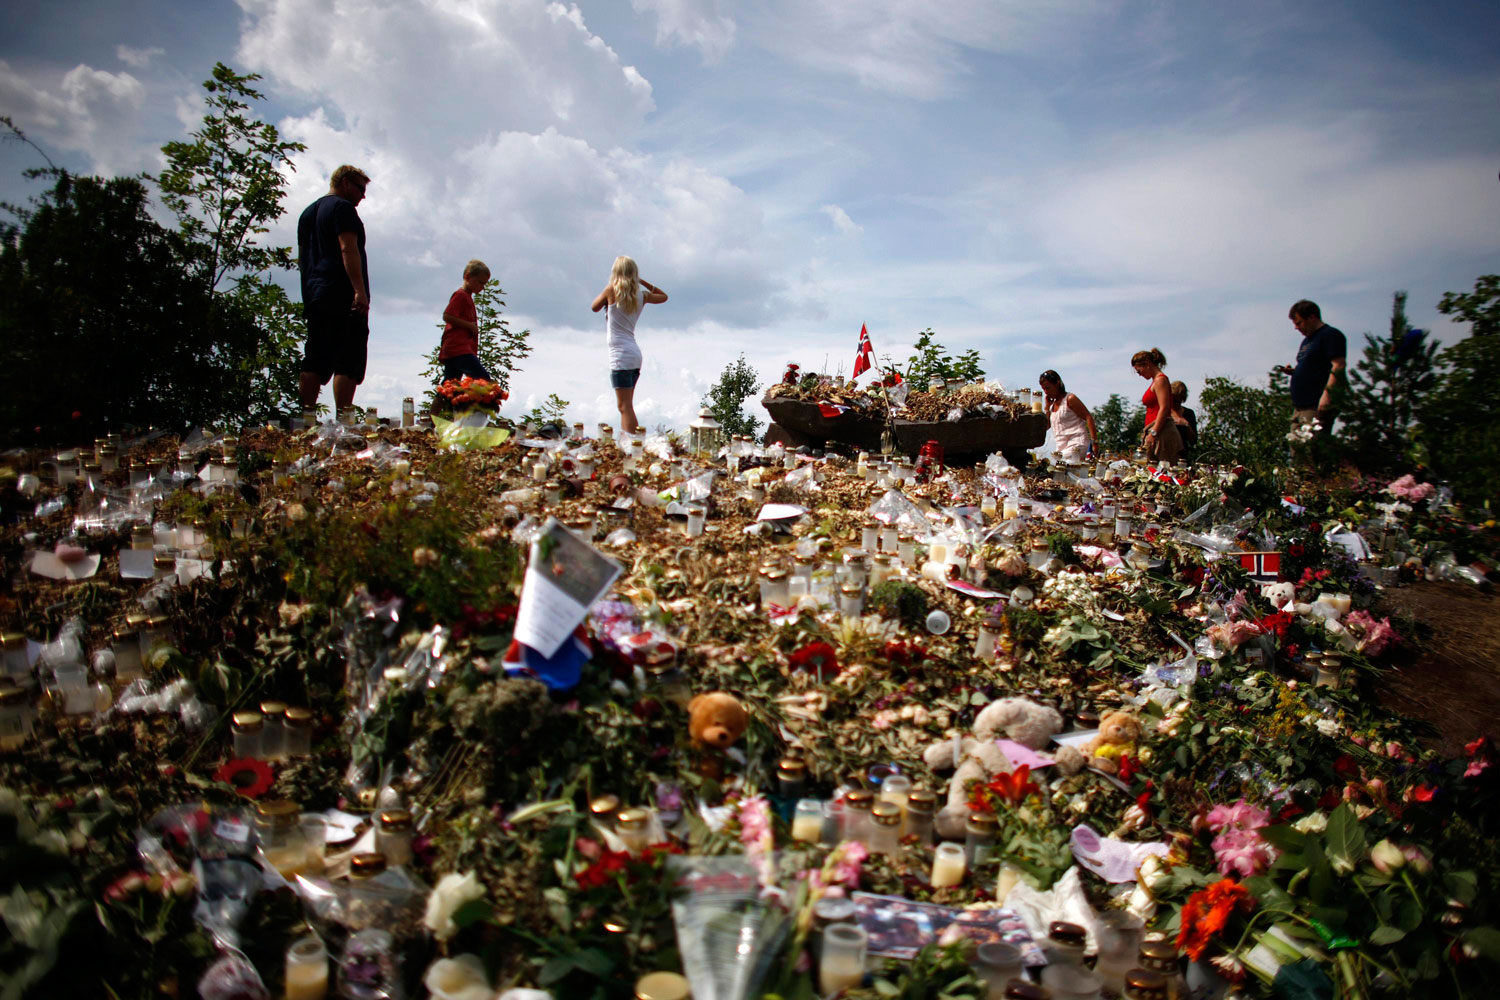 August 1, 2011. People stand on a memorial on the shore of Tyrifjorden lake overlooking Utoeya island where anti-Islam extremist Anders Behring Breivik killed 68 people in a shooting rampage in July. An opinion poll showed Norwegians believe penalties for serious crimes in their country should be tightened in the wake of the shooting and a bomb attack that killed 77 people.